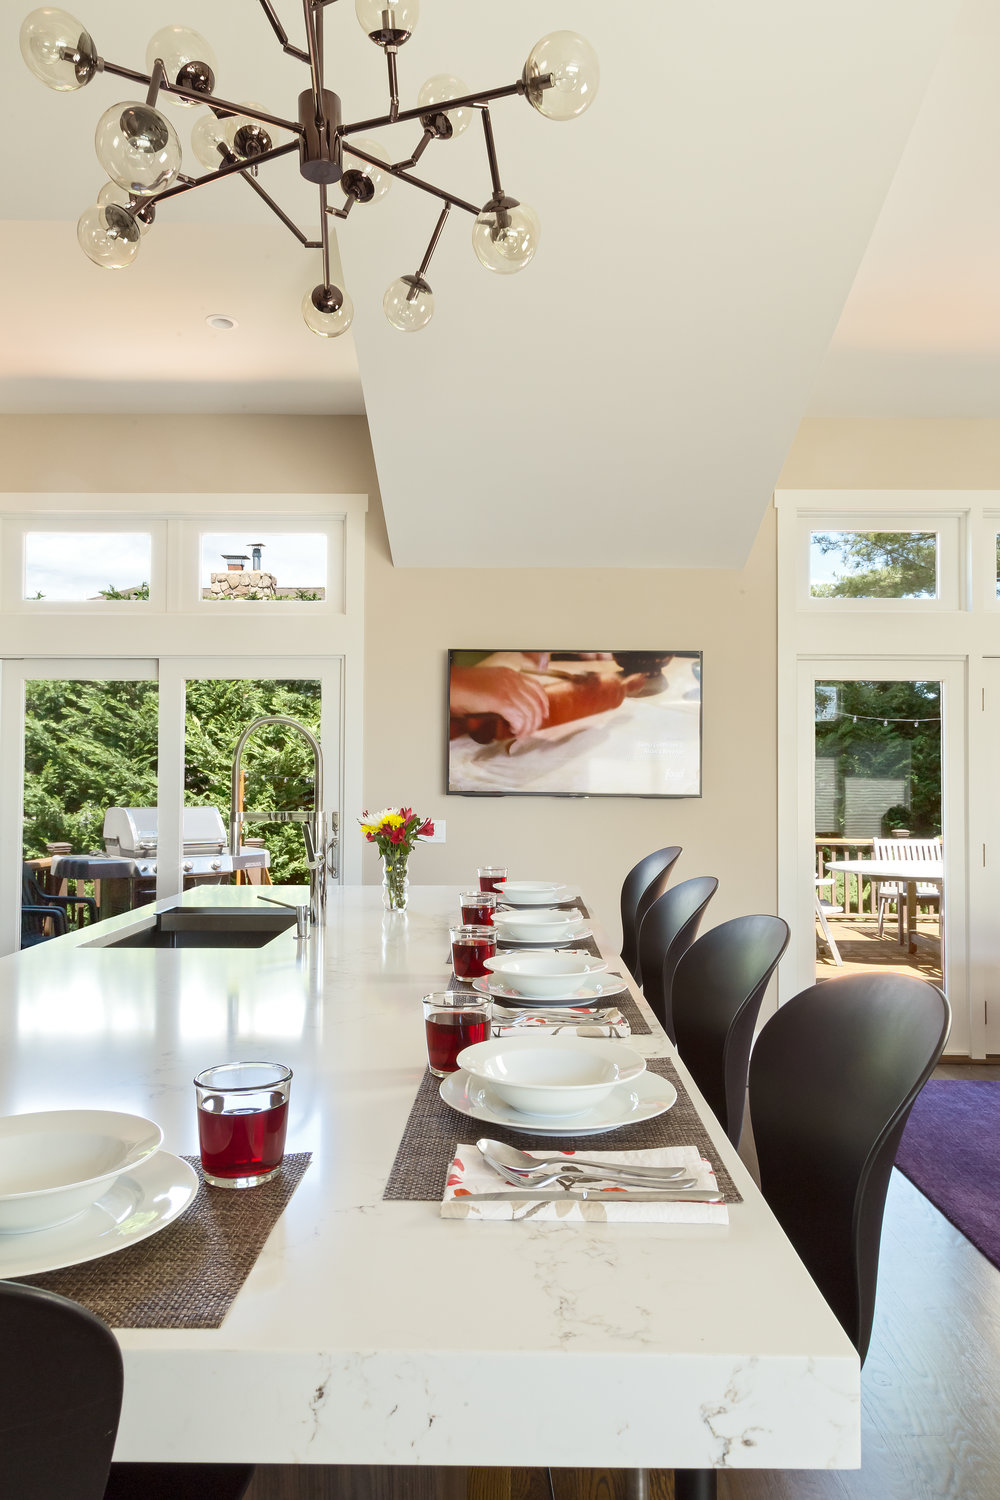 Contemporary style kitchen with long dining table